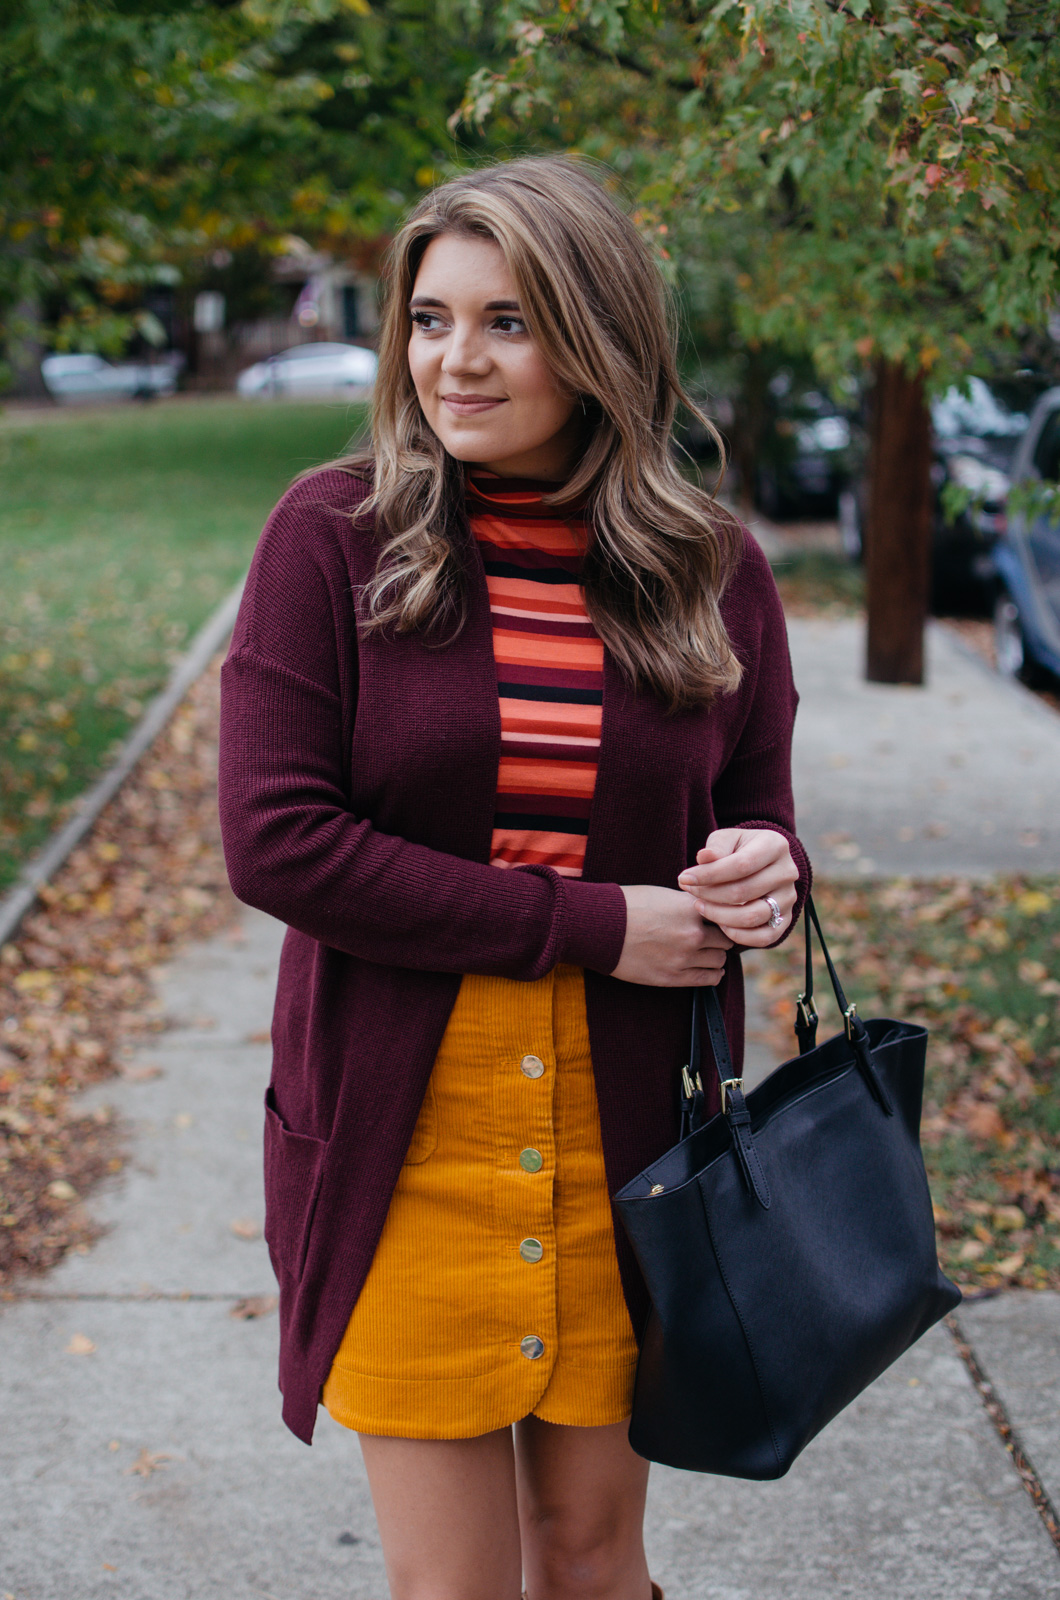 fall professional work outfits - what to wear to work fall | For more Fall outfit ideas, click through to bylaurenm.com!